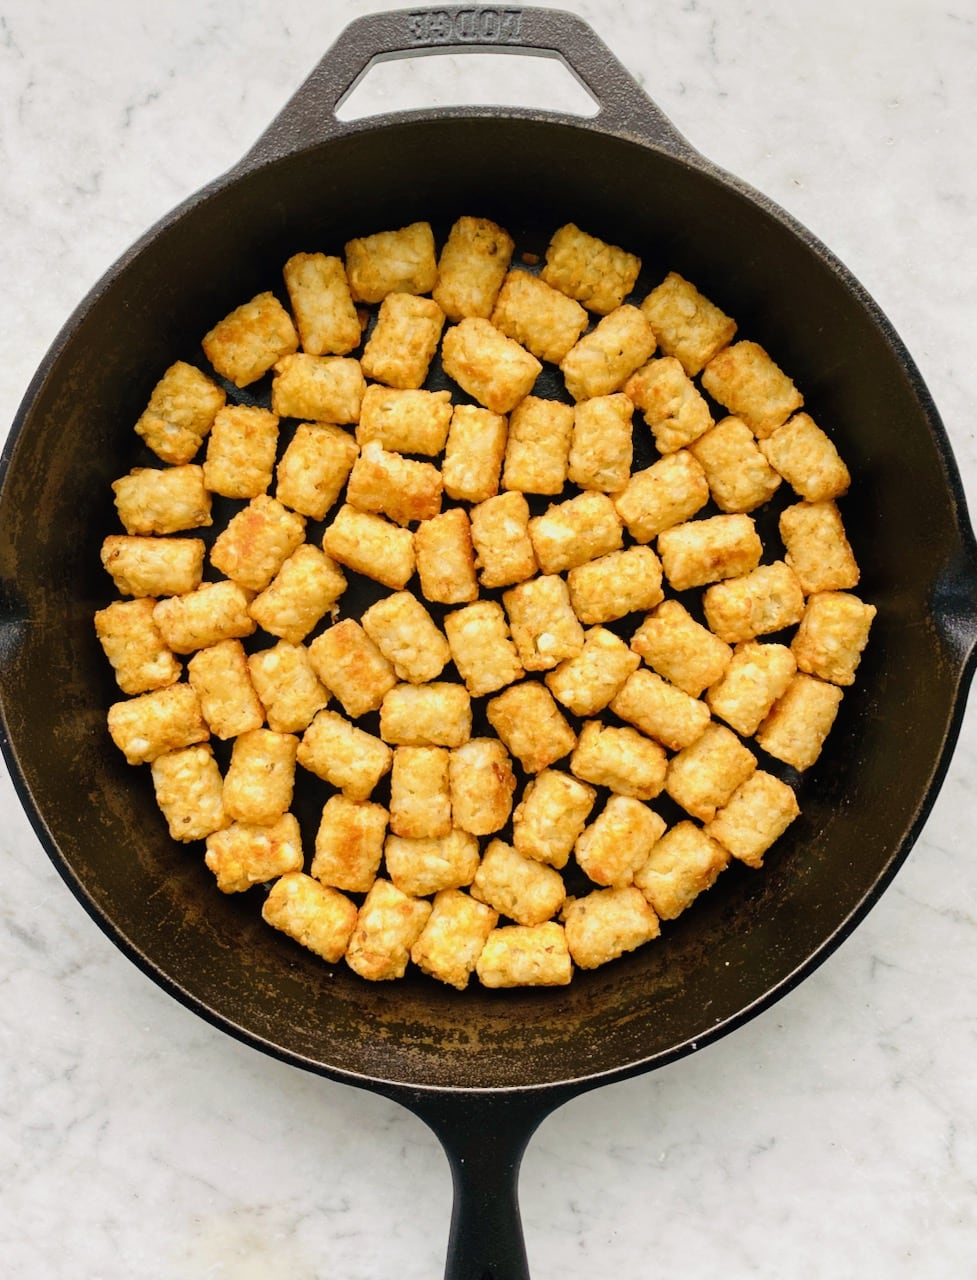 layer of tater tots in a cast iron skillet